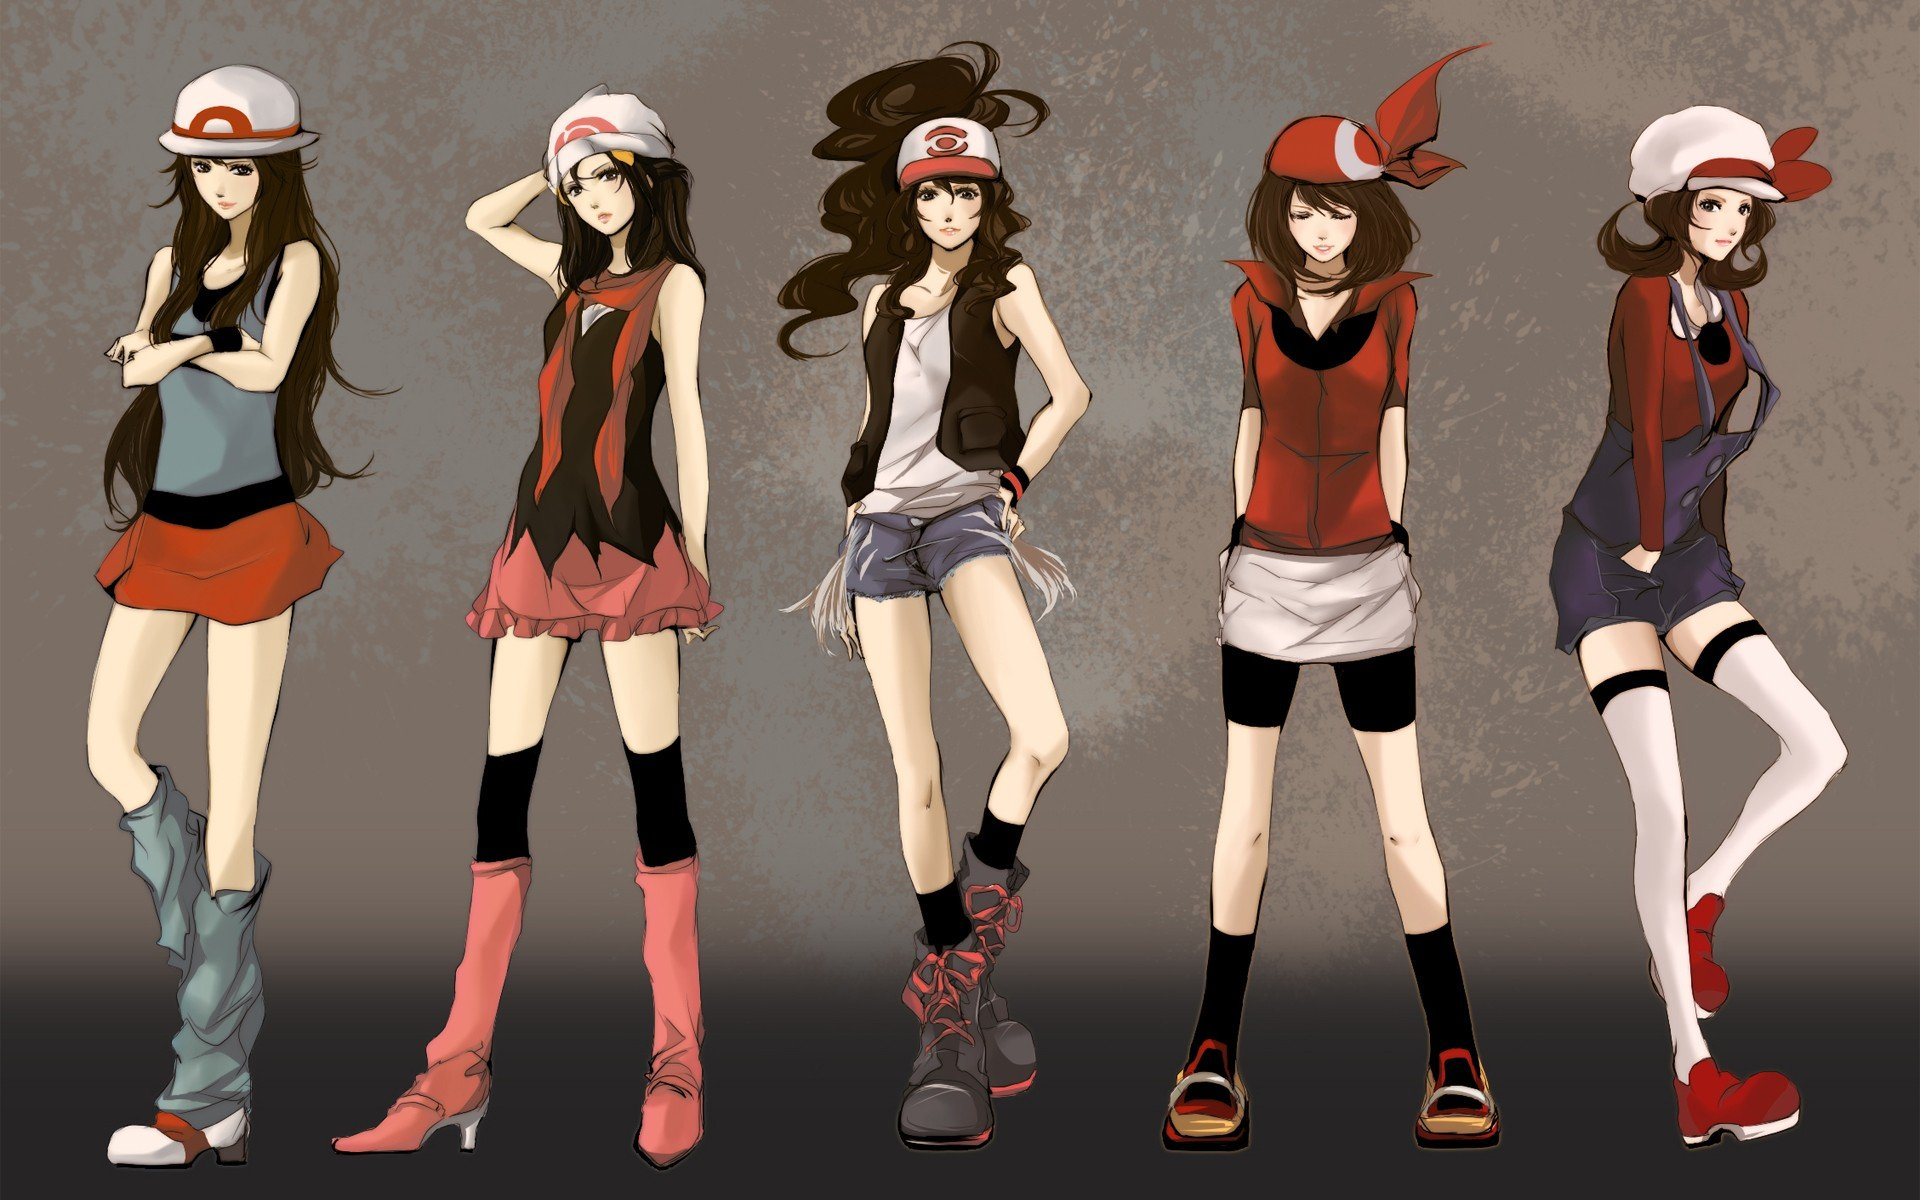 Drawn women pokemon Pokemon Cartoonish Pokemon Monsters Wallpaper